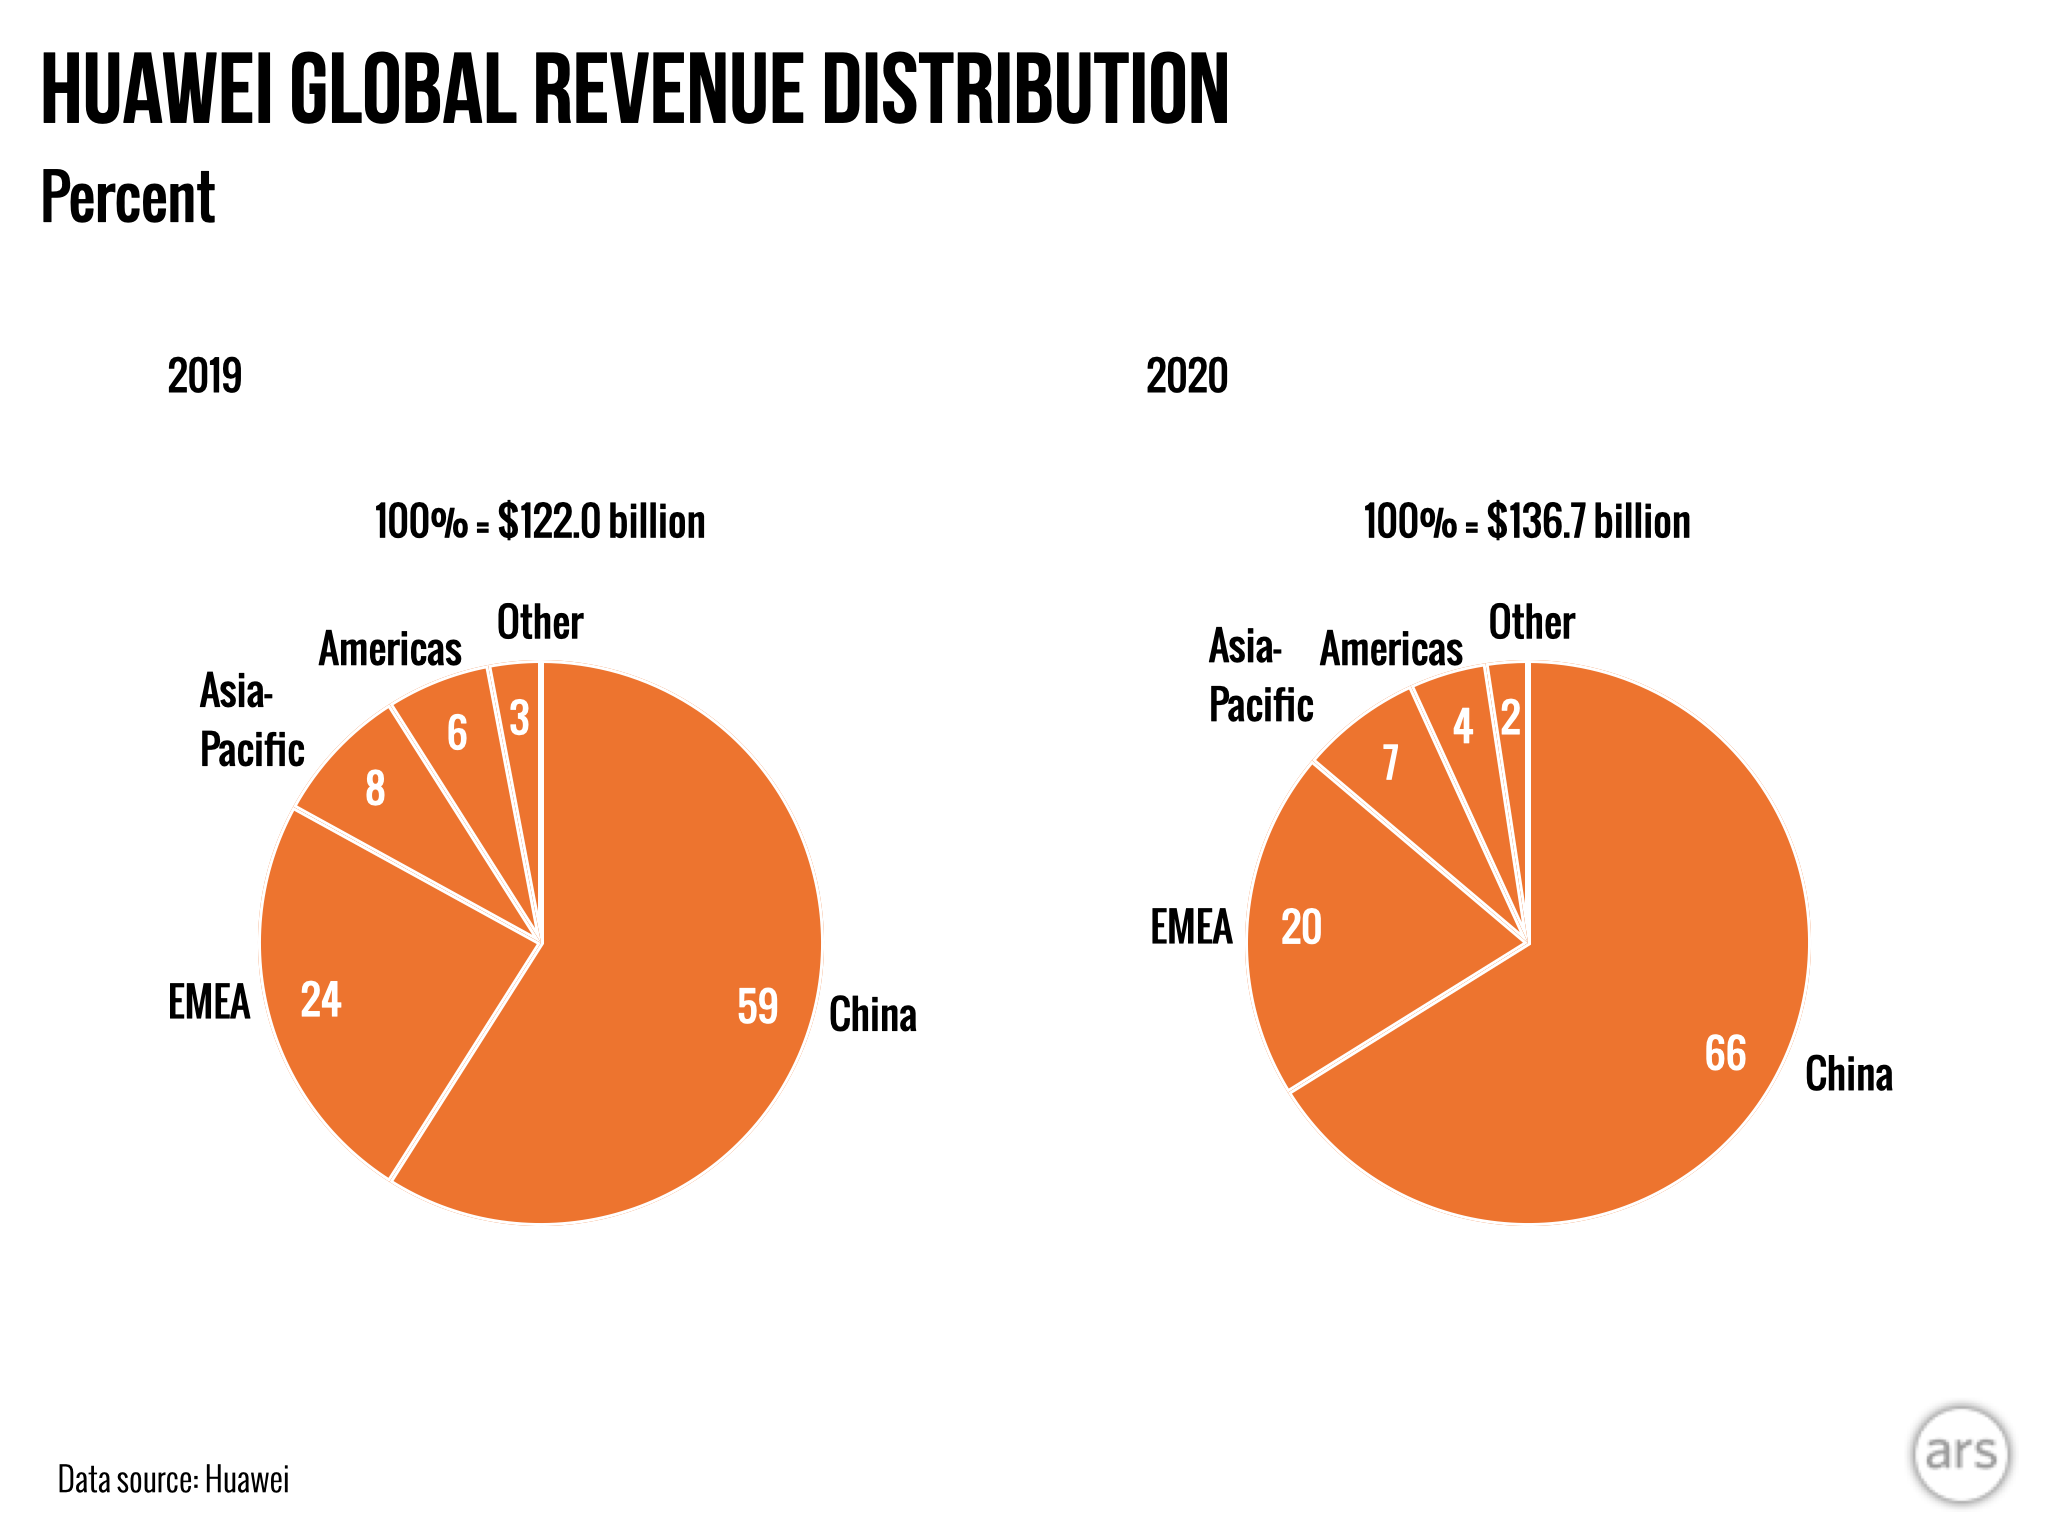 Huawei's revenue grew in China in 2020 but shrank everywhere else.